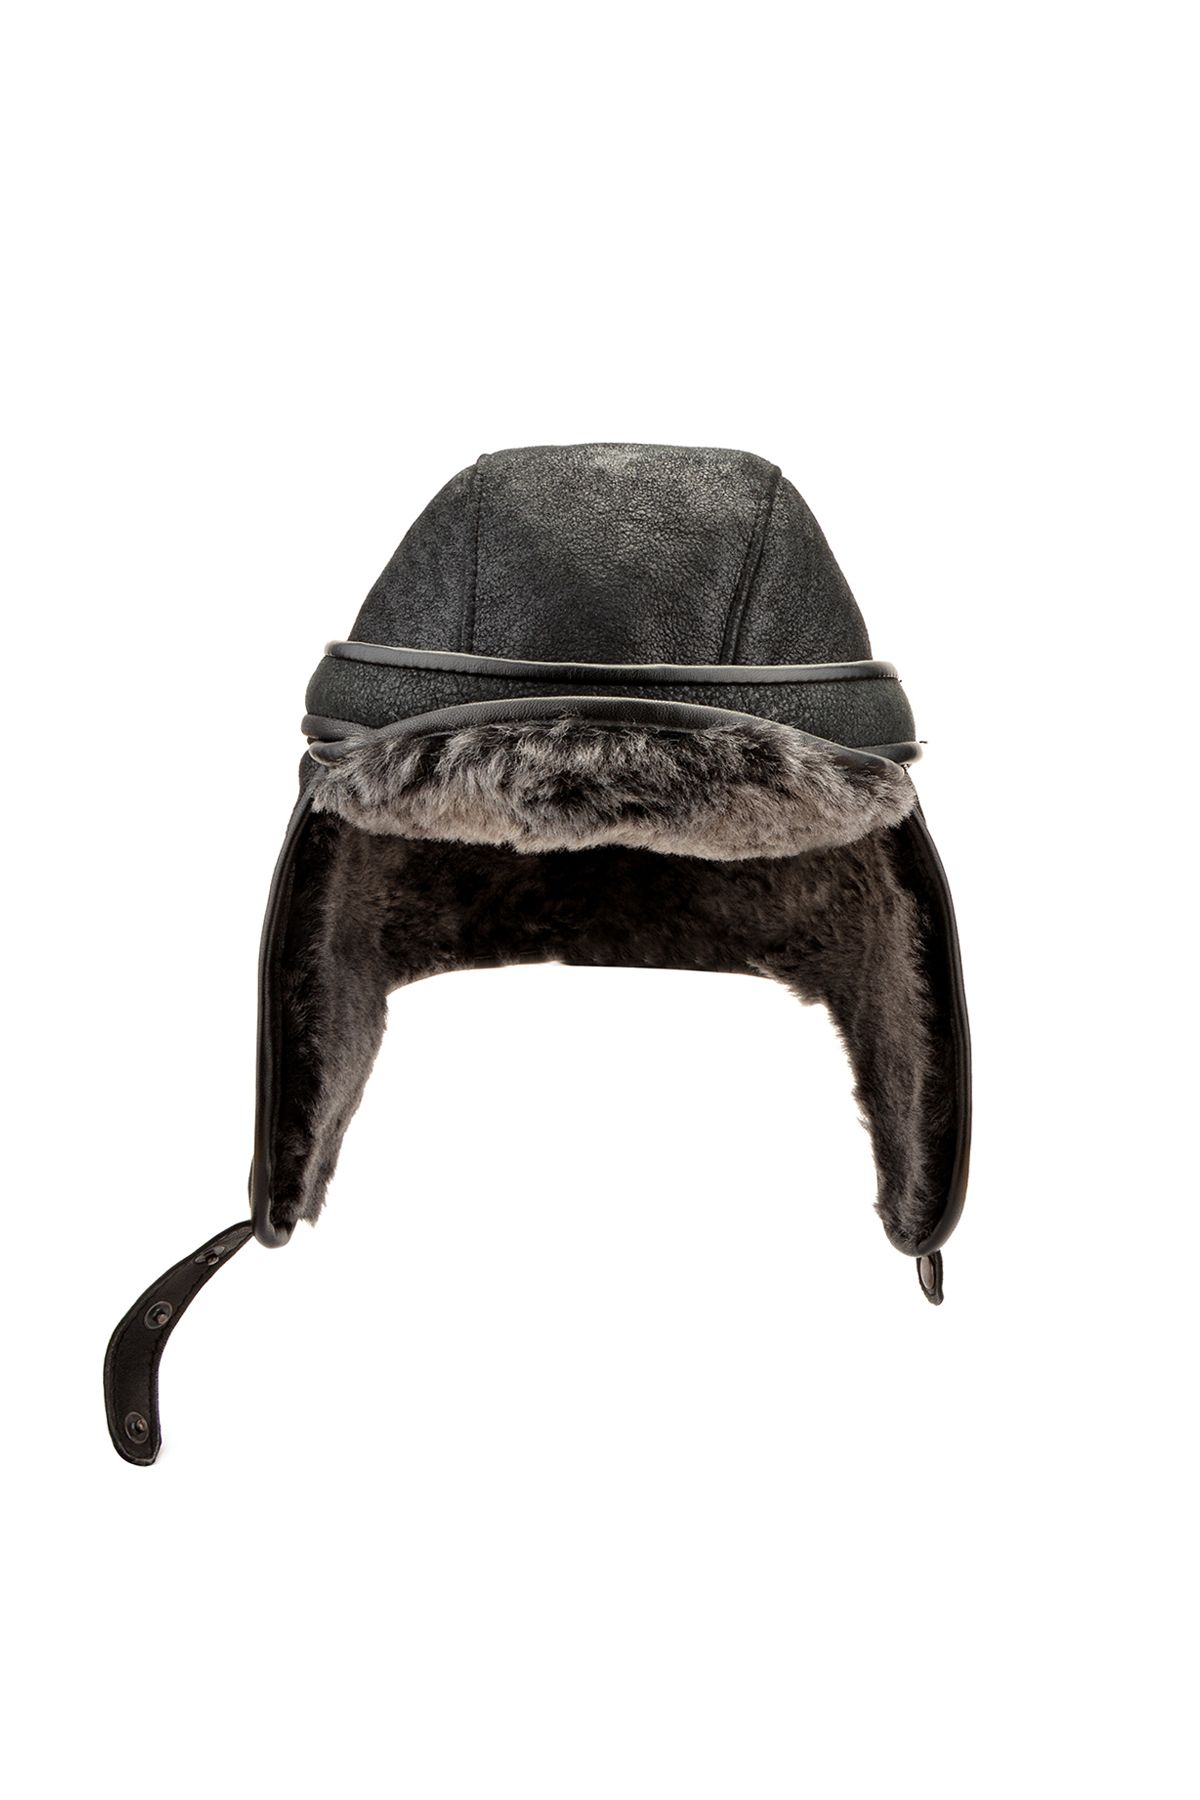 Pegia Pilot Ear-Flaps Hat From Genuine Leather And Fur Black